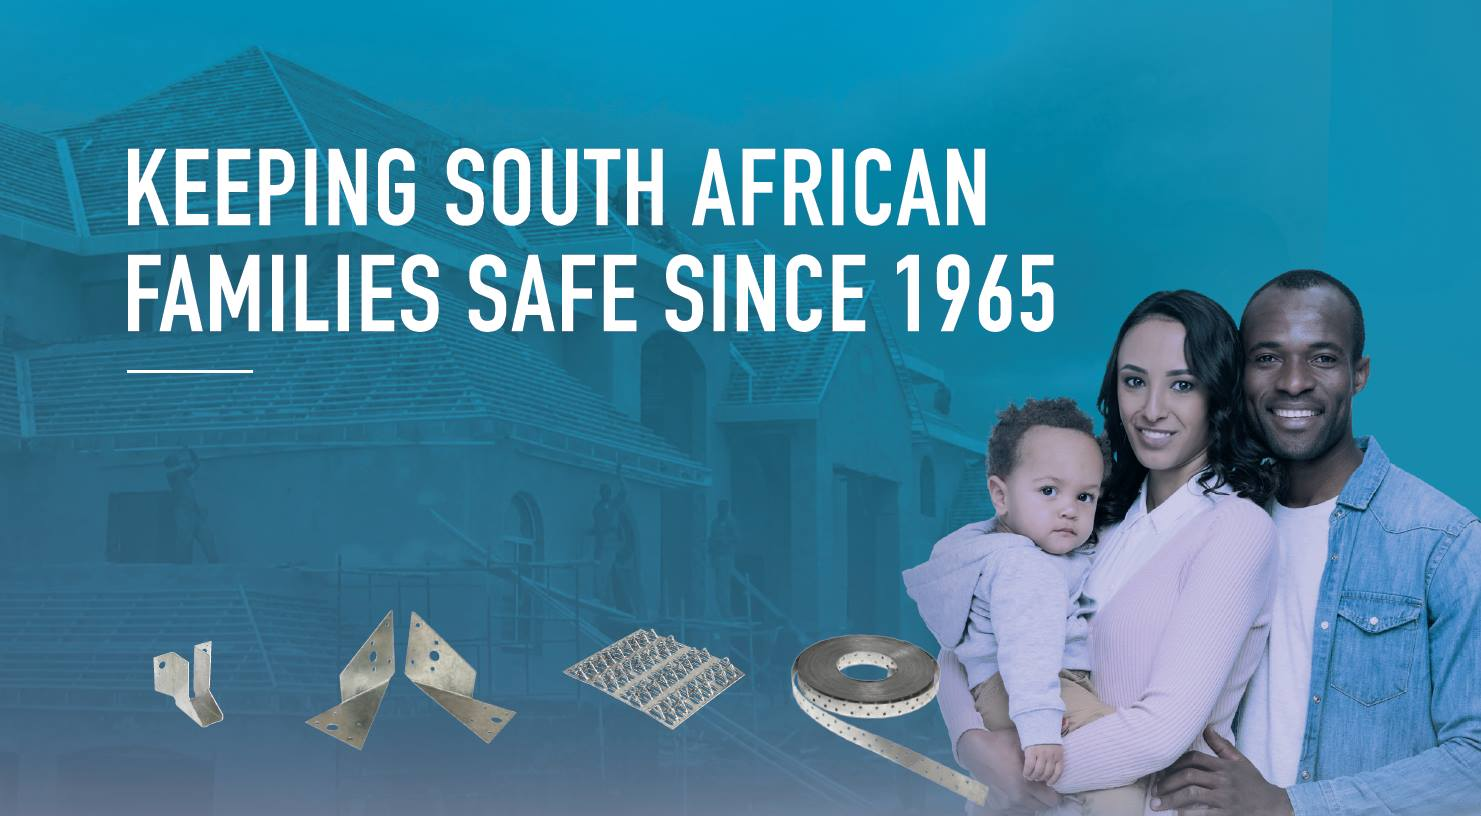 KEEPING SOUTH AFRICAN FAMILIES SAFE FOR OVER 50 YEARS.